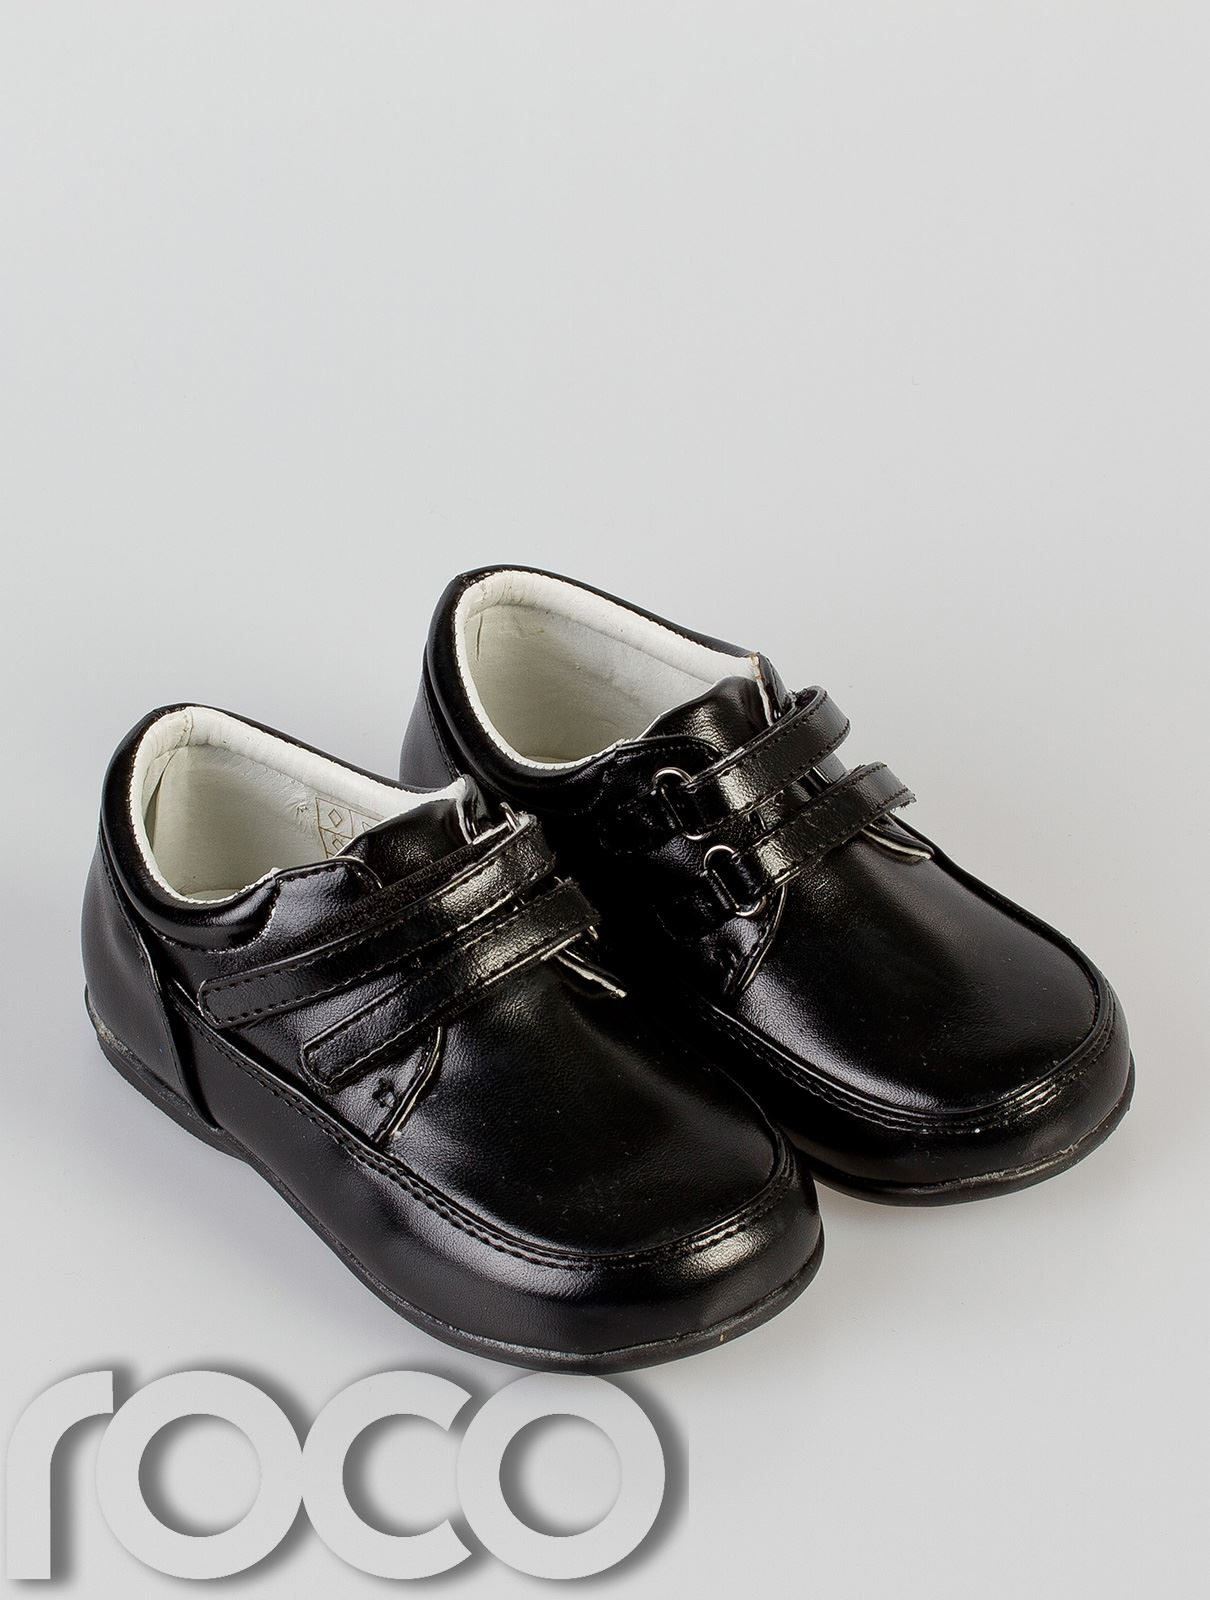 Baby Boys White Shoes Boys Black Shoes Cream Page Boy Shoes